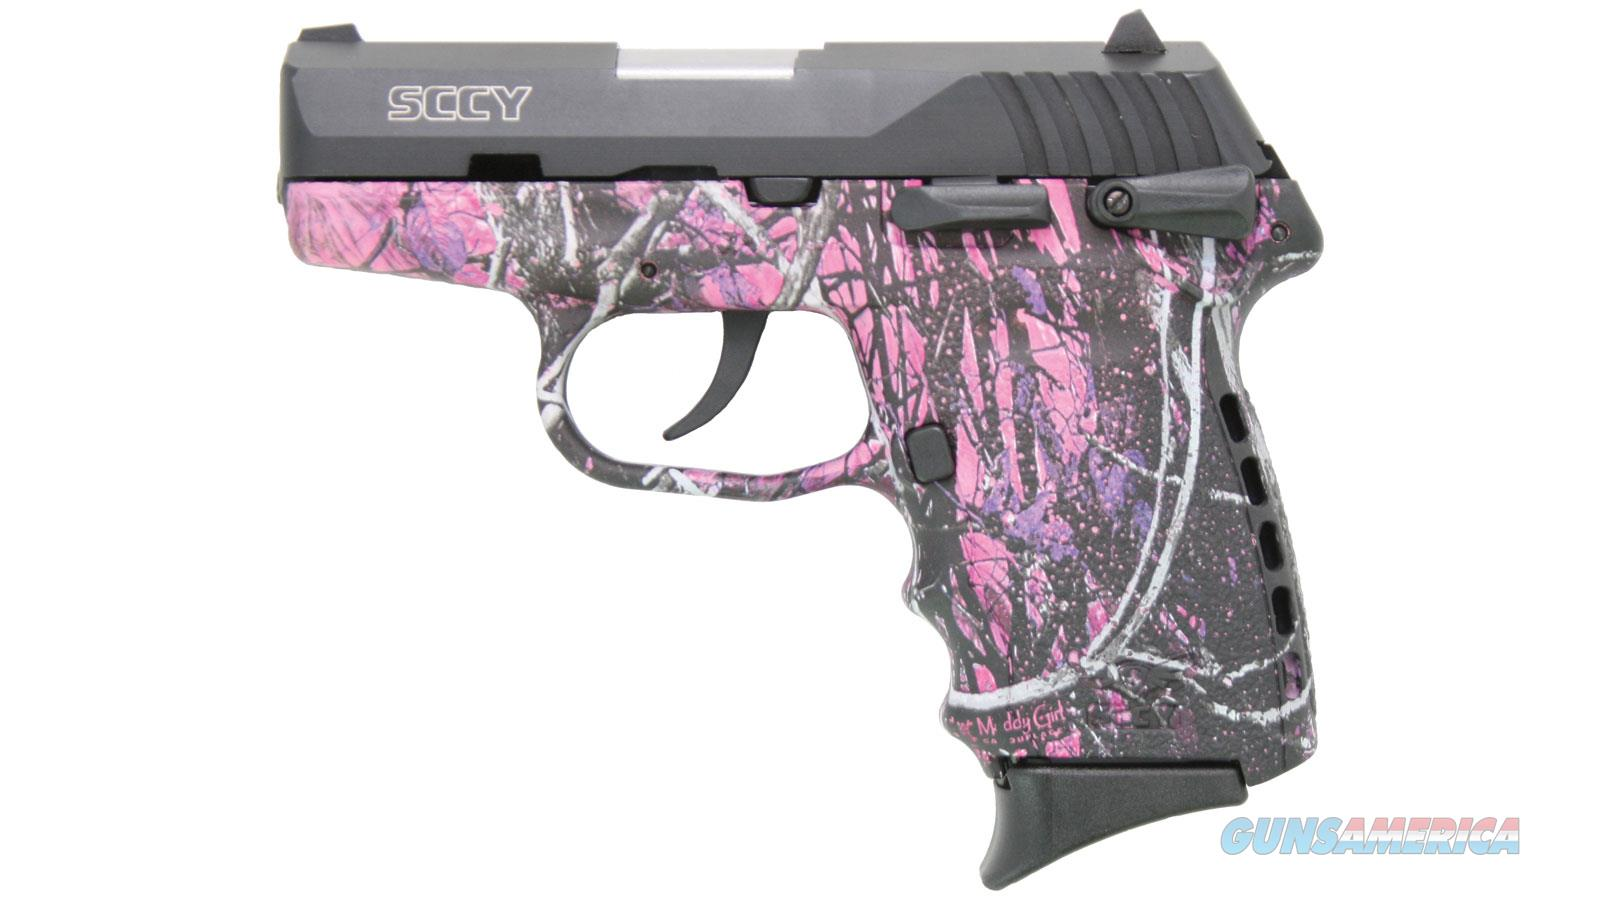 Sccy Industries Semi Auto Pistol 9Mm Black Nitride 2-10Rnd Mag Double Sided Safety Muddy Girl Grip CPX1-CBMG  Guns > Pistols > S Misc Pistols